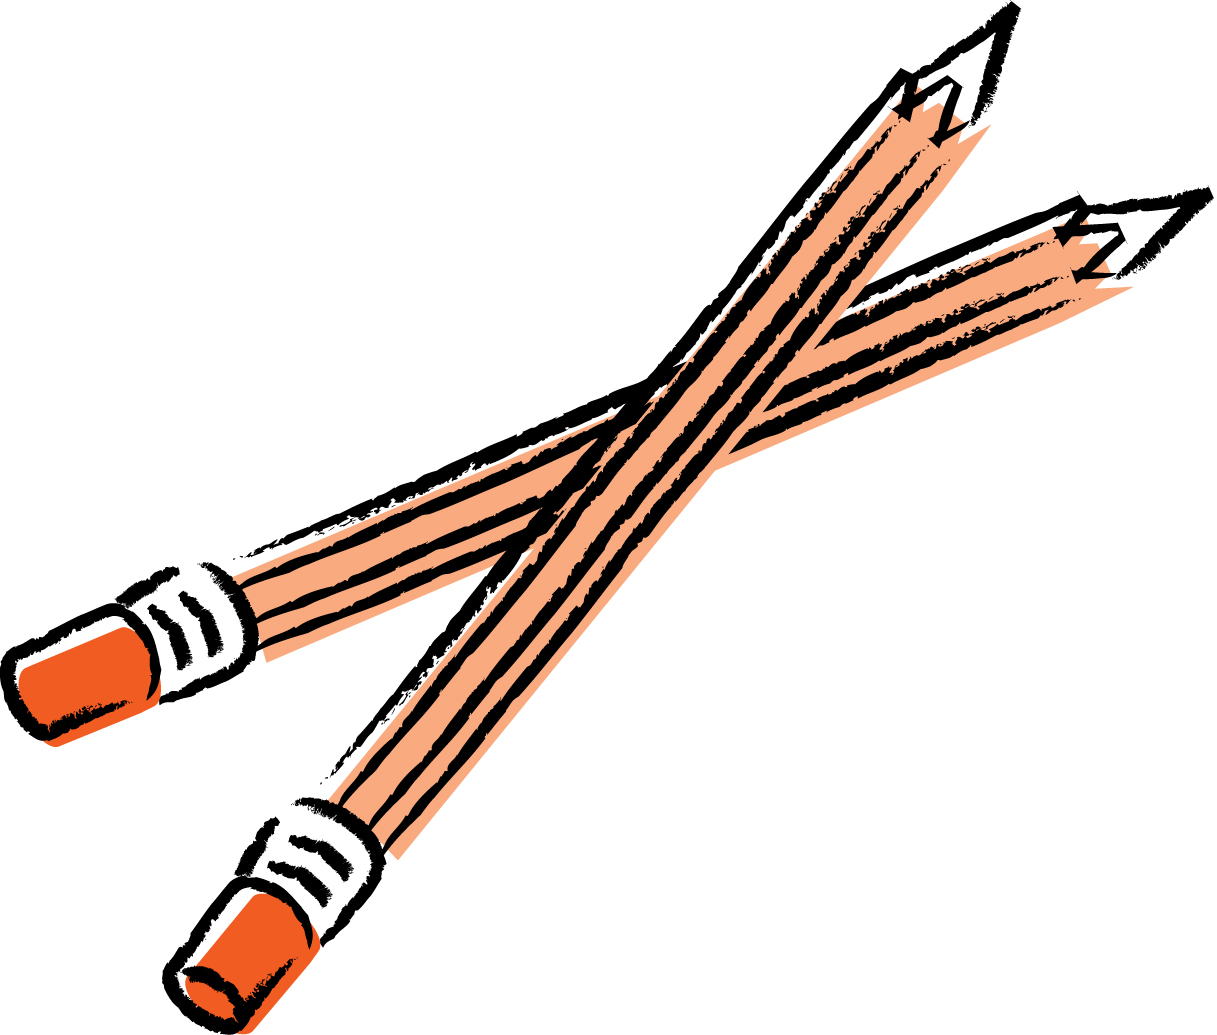 Pencil writing clipart panda free images